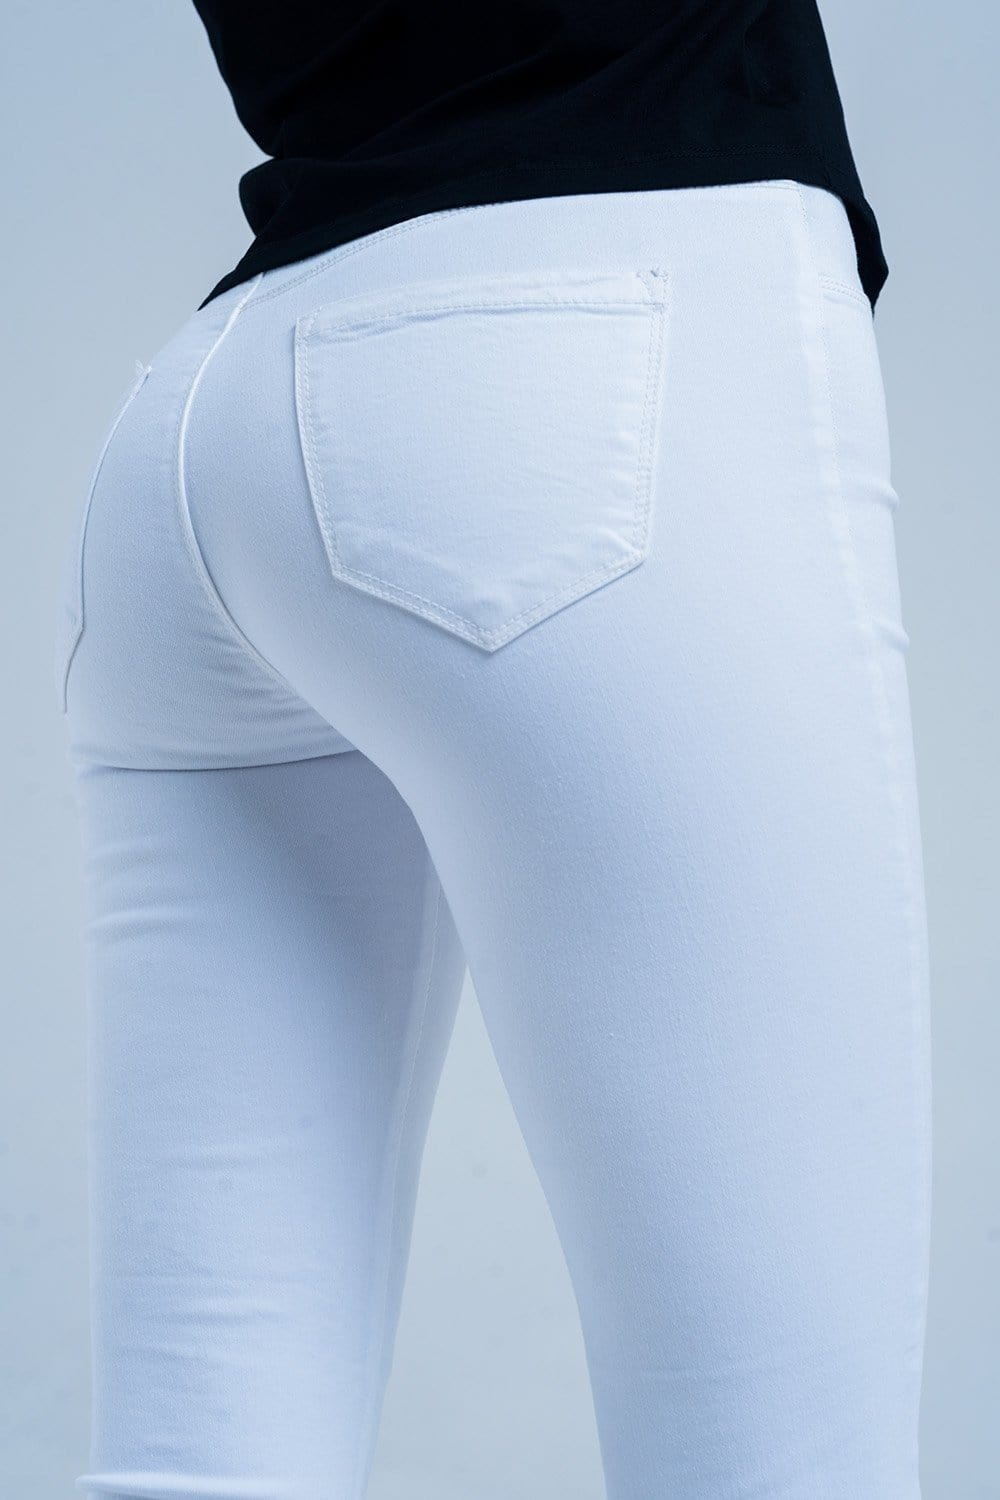 White Jeggings with Back Pockets - Himelhoch's